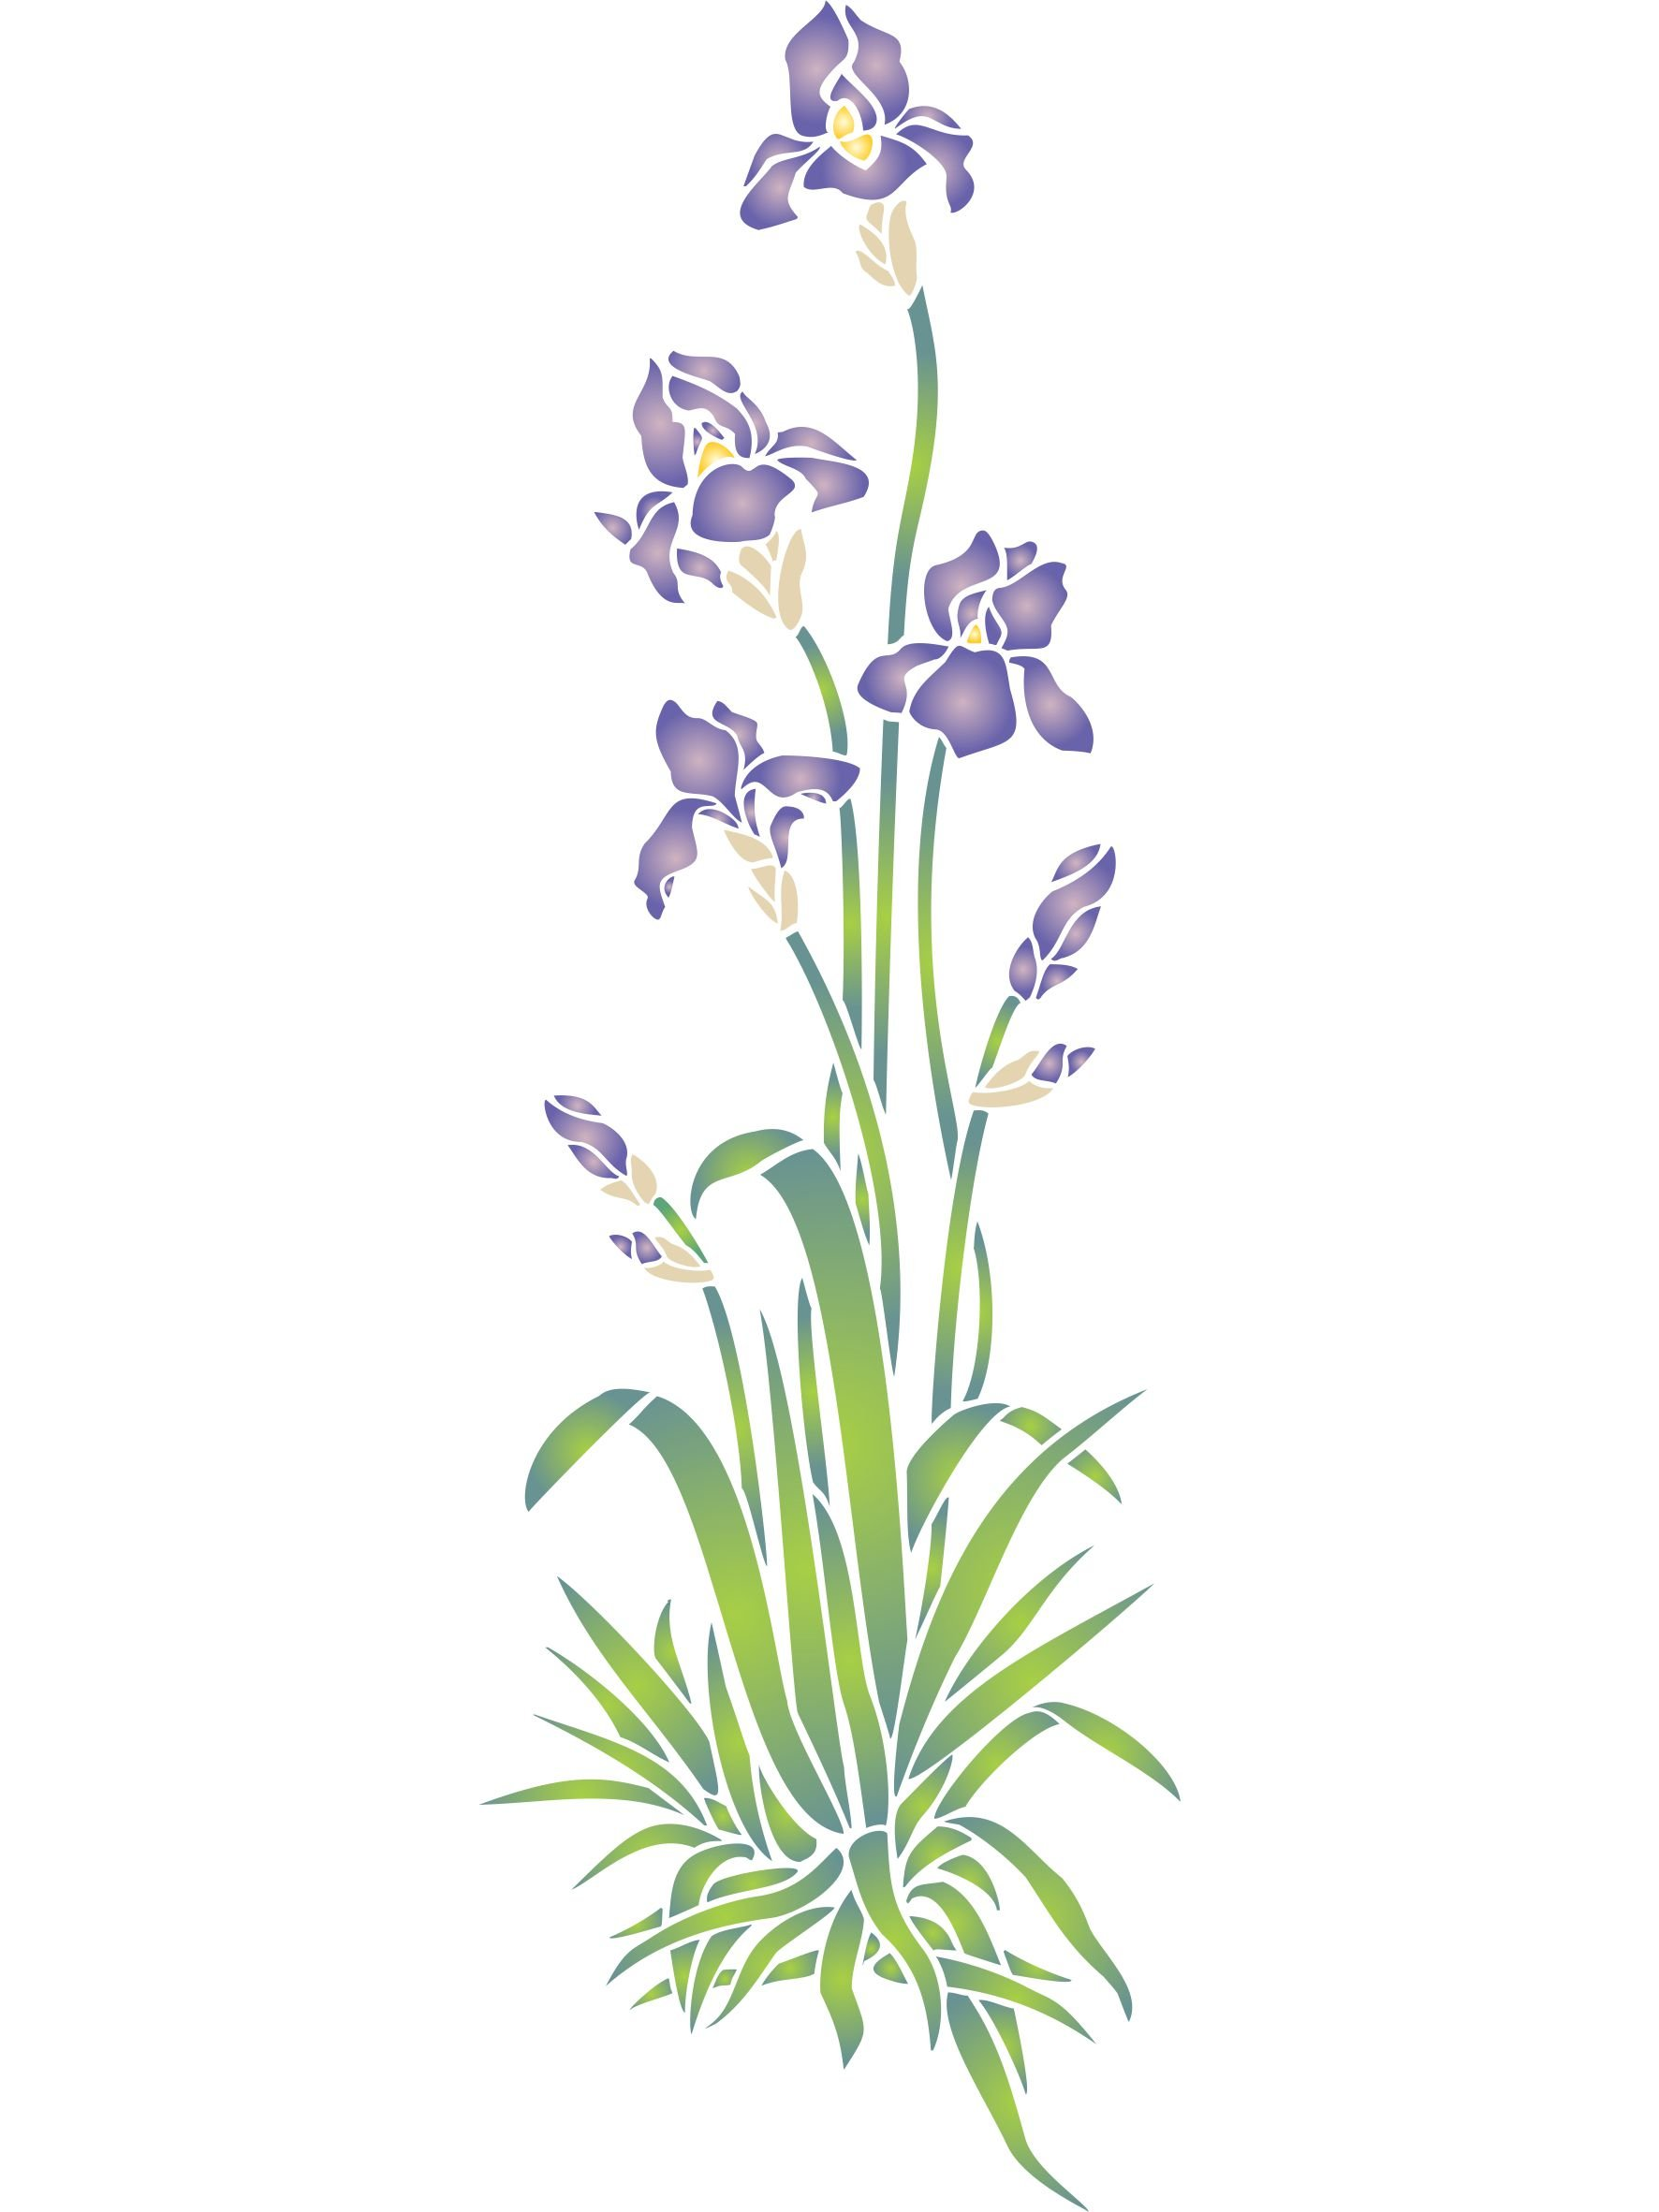 Iris Stencil - (size 6.5''w x 20.5''h) Reusable Wall Stencils for Painting - Best Quality Wall Border Flower Stencil Ideas - Use on Walls, Floors, Fabrics, Glass, Wood, Terracotta, and More...